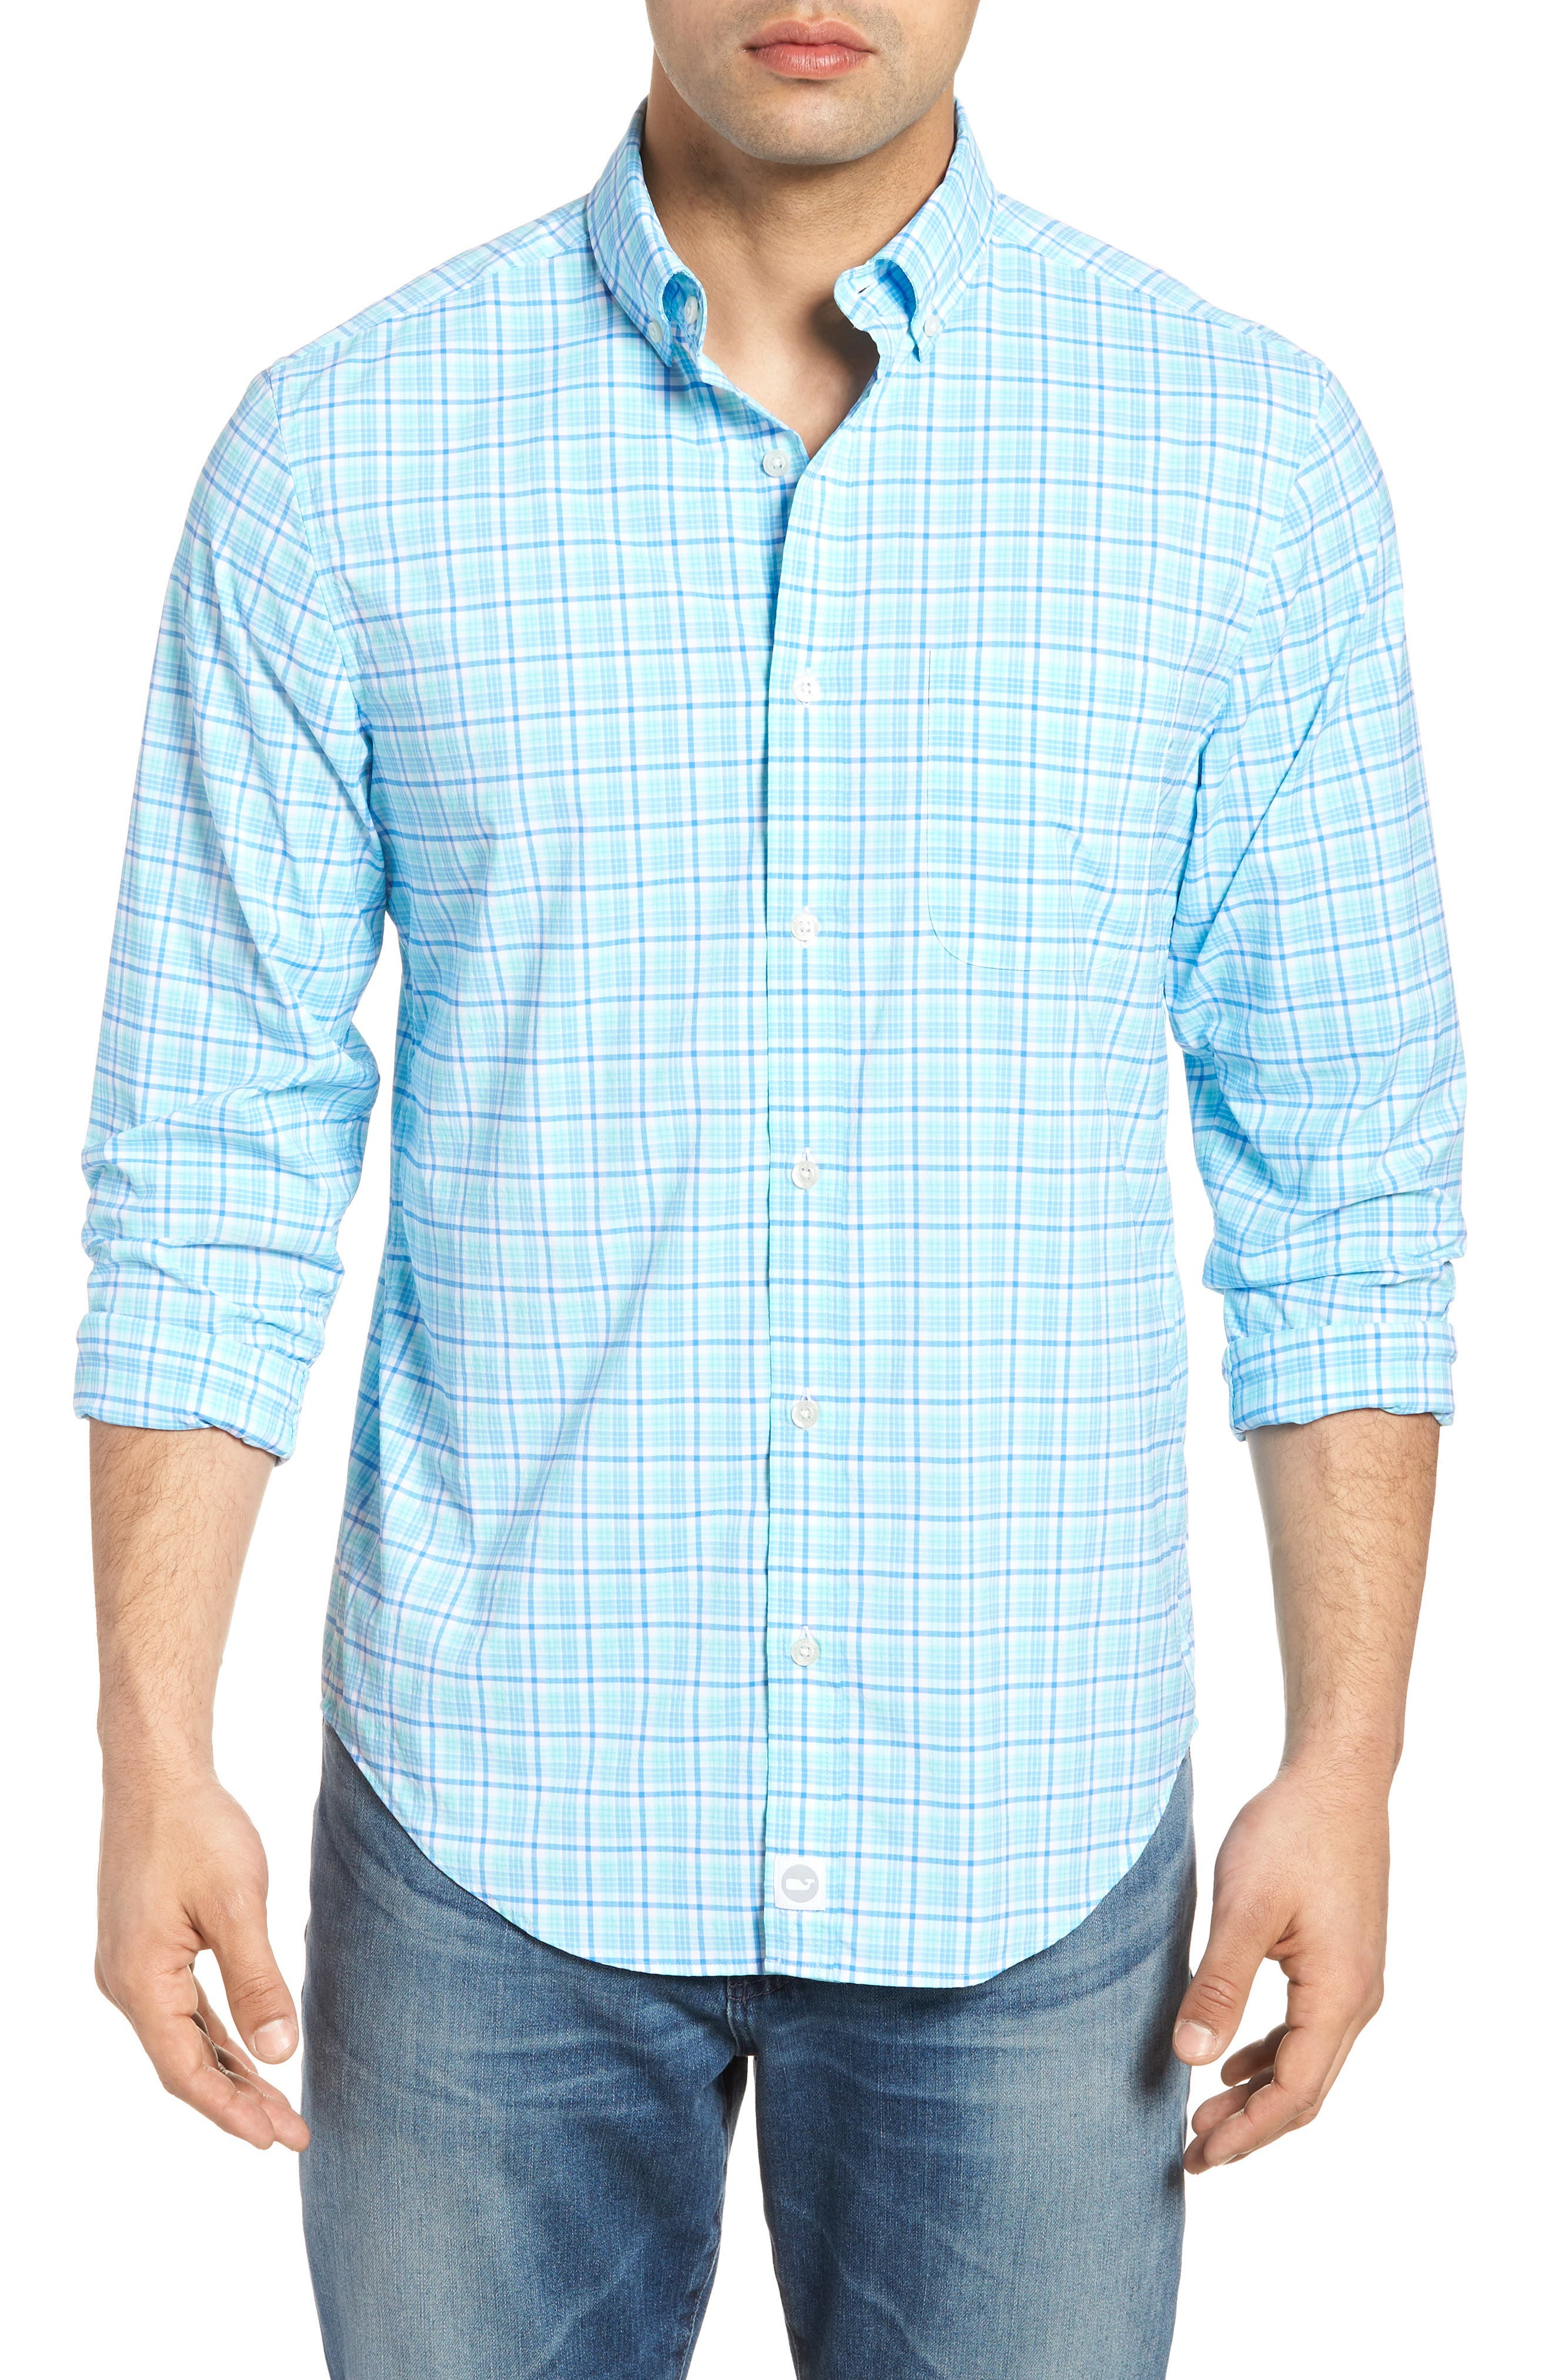 Tipsy Bar Classic Fit Stretch Plaid Sport Shirt,                             Main thumbnail 1, color,                             Turquoise